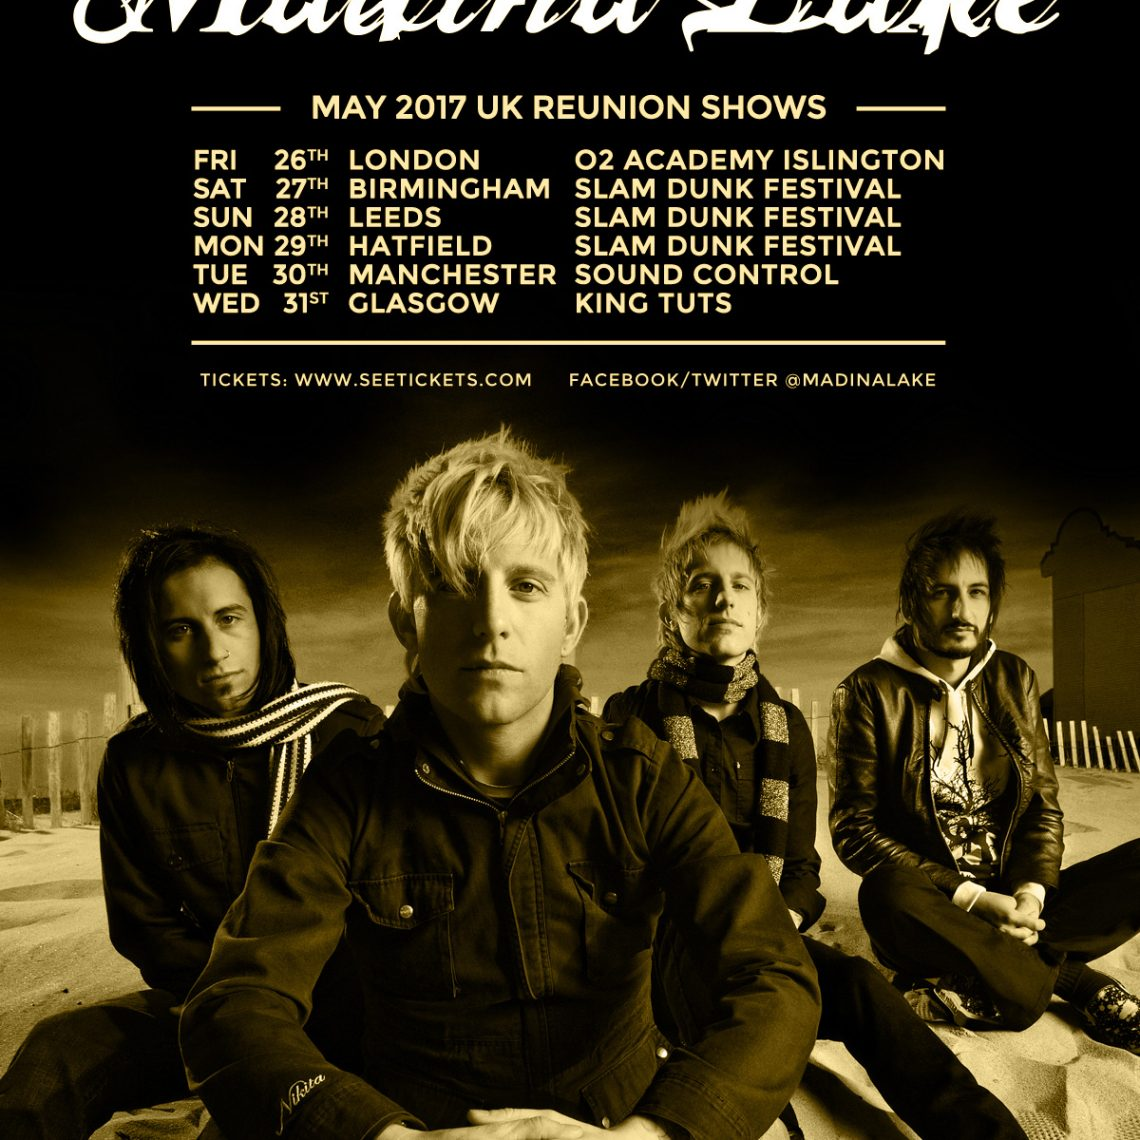 MADINA LAKE reform & announce UK shows inc Slam Dunk